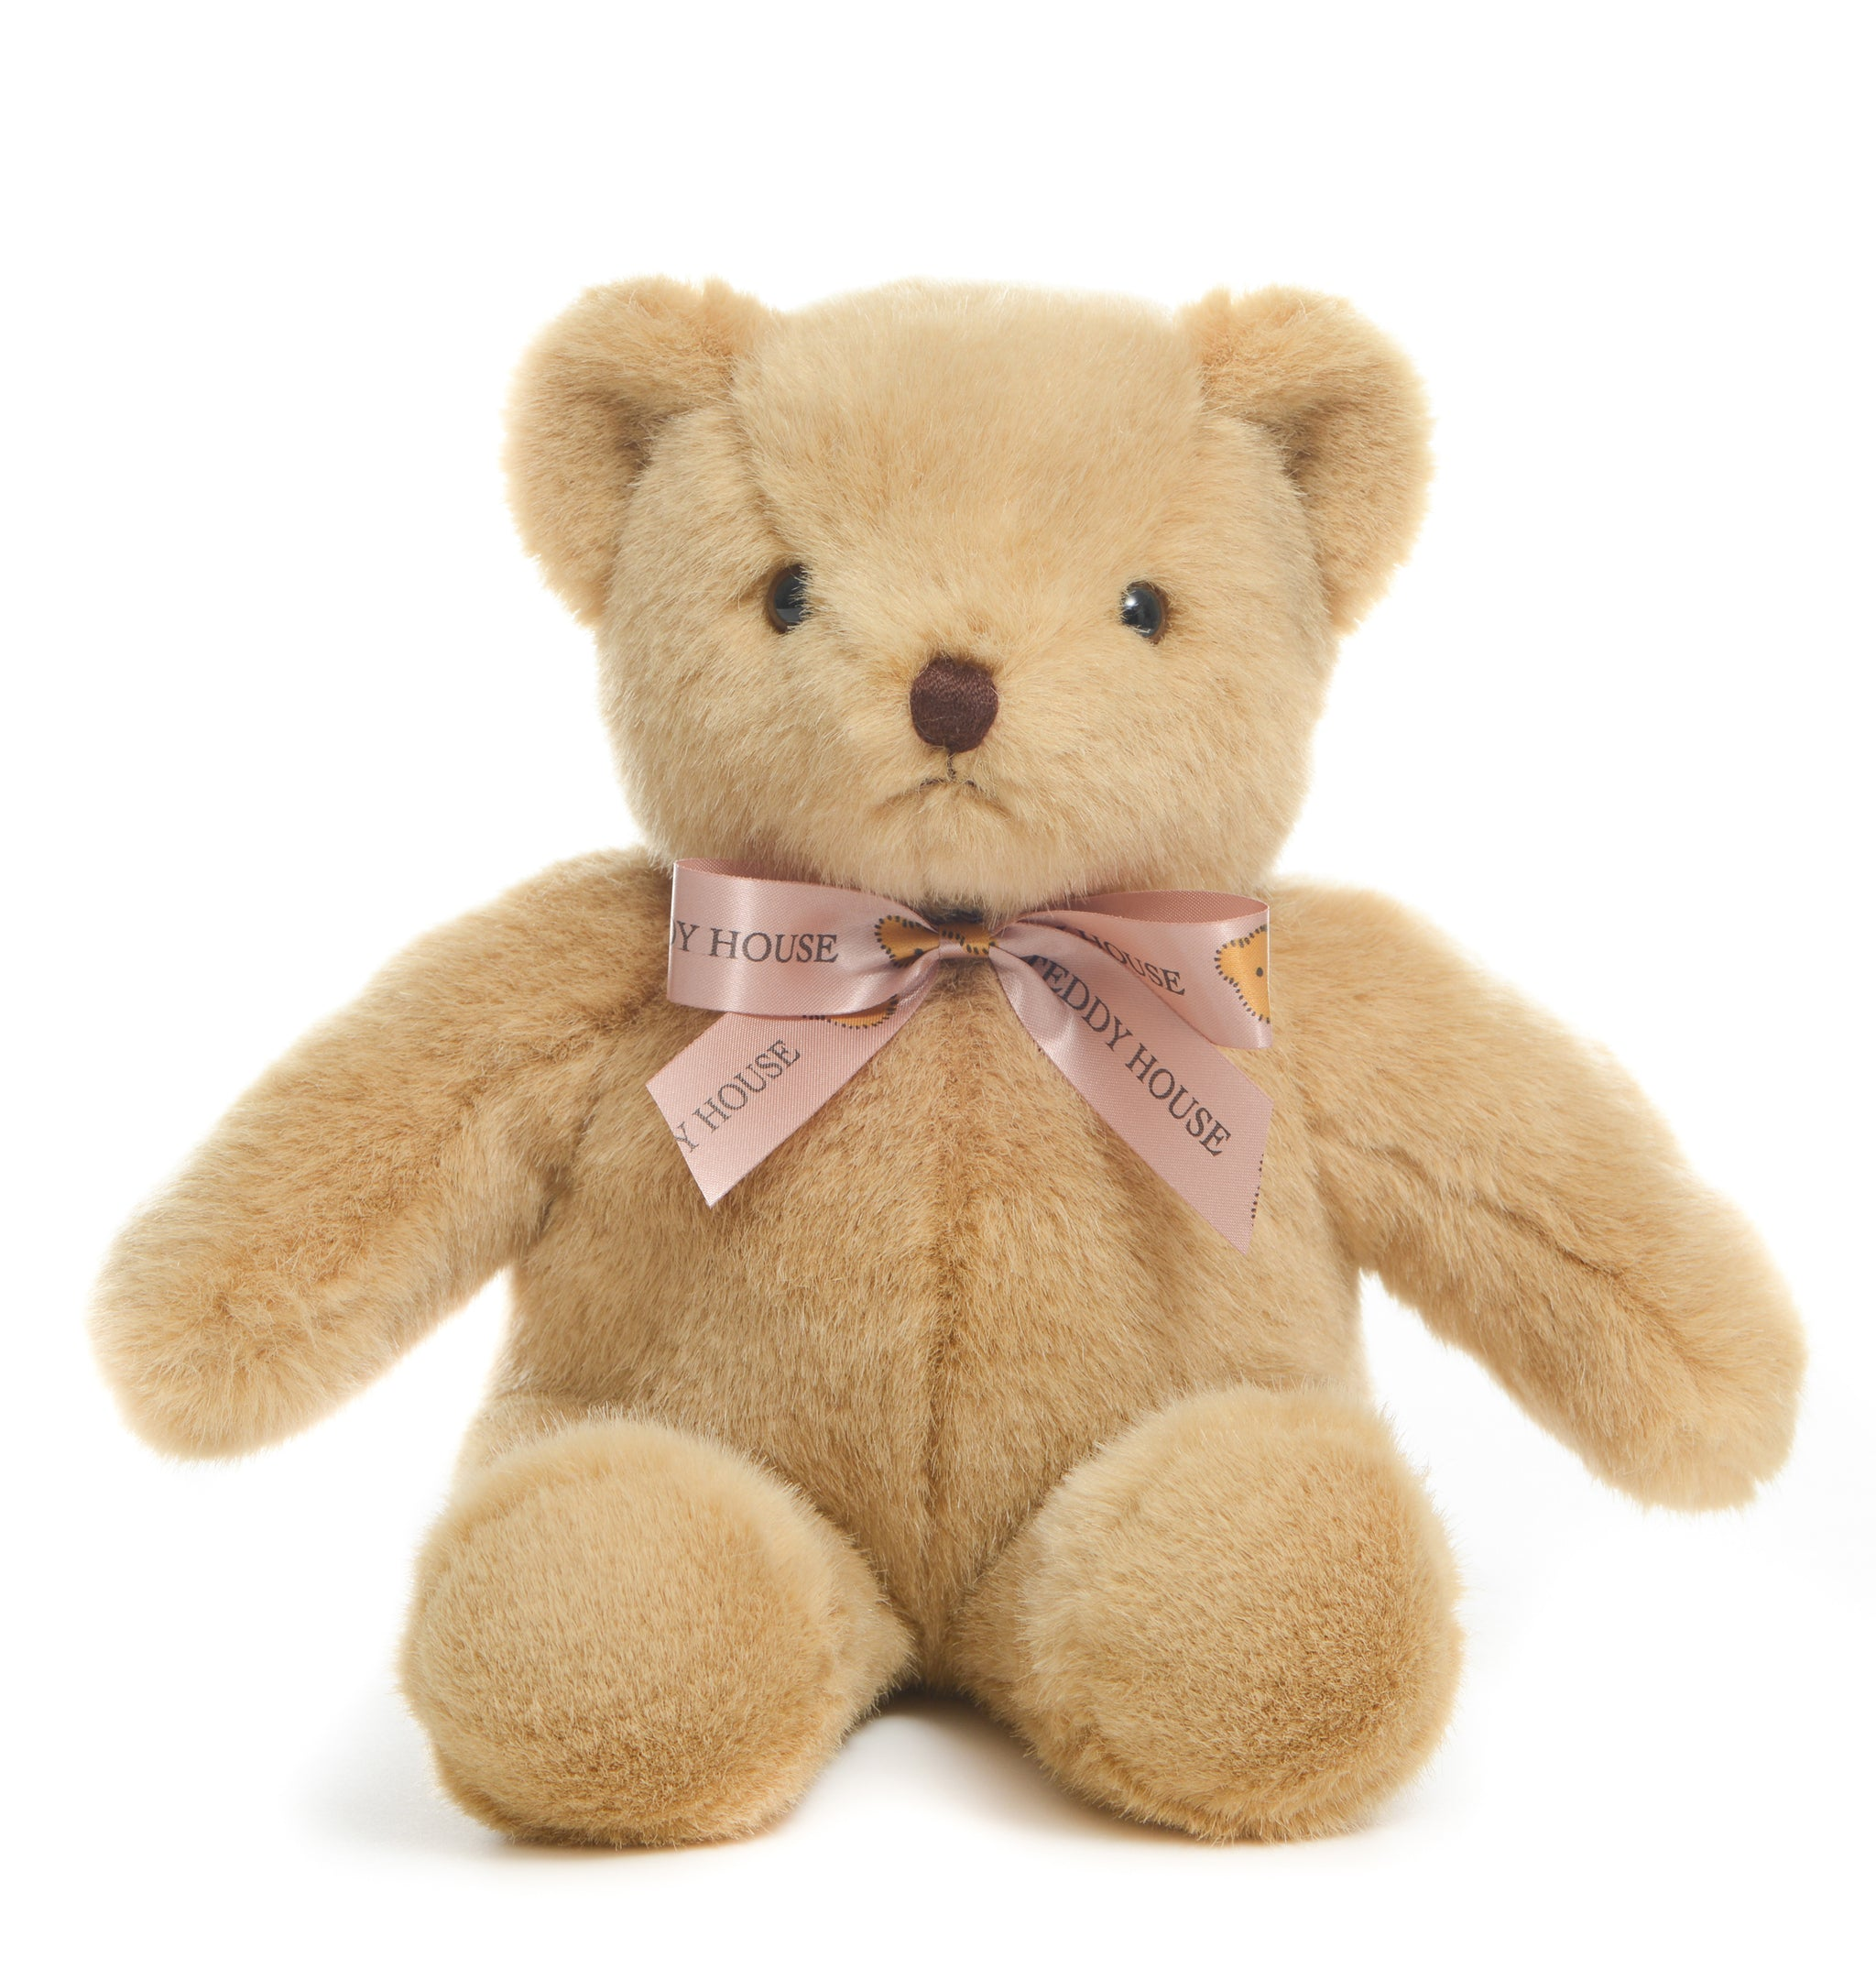 TEDDY HOUSE BONEKA TEDDY BEAR TAMBO BEAR 10 INCH